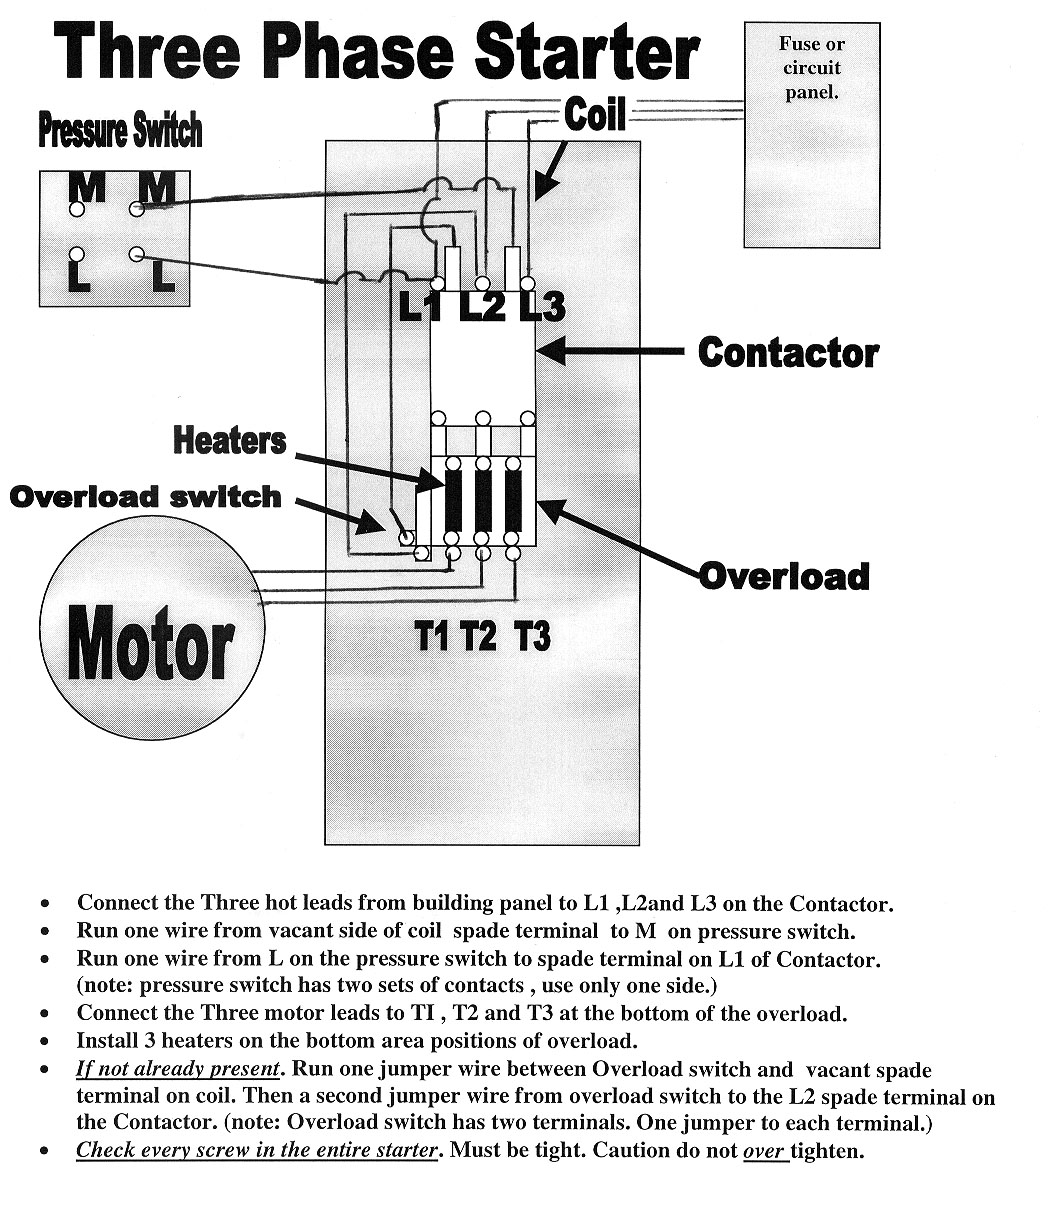 Click here to view/print THREE PHASE wiring diagrams